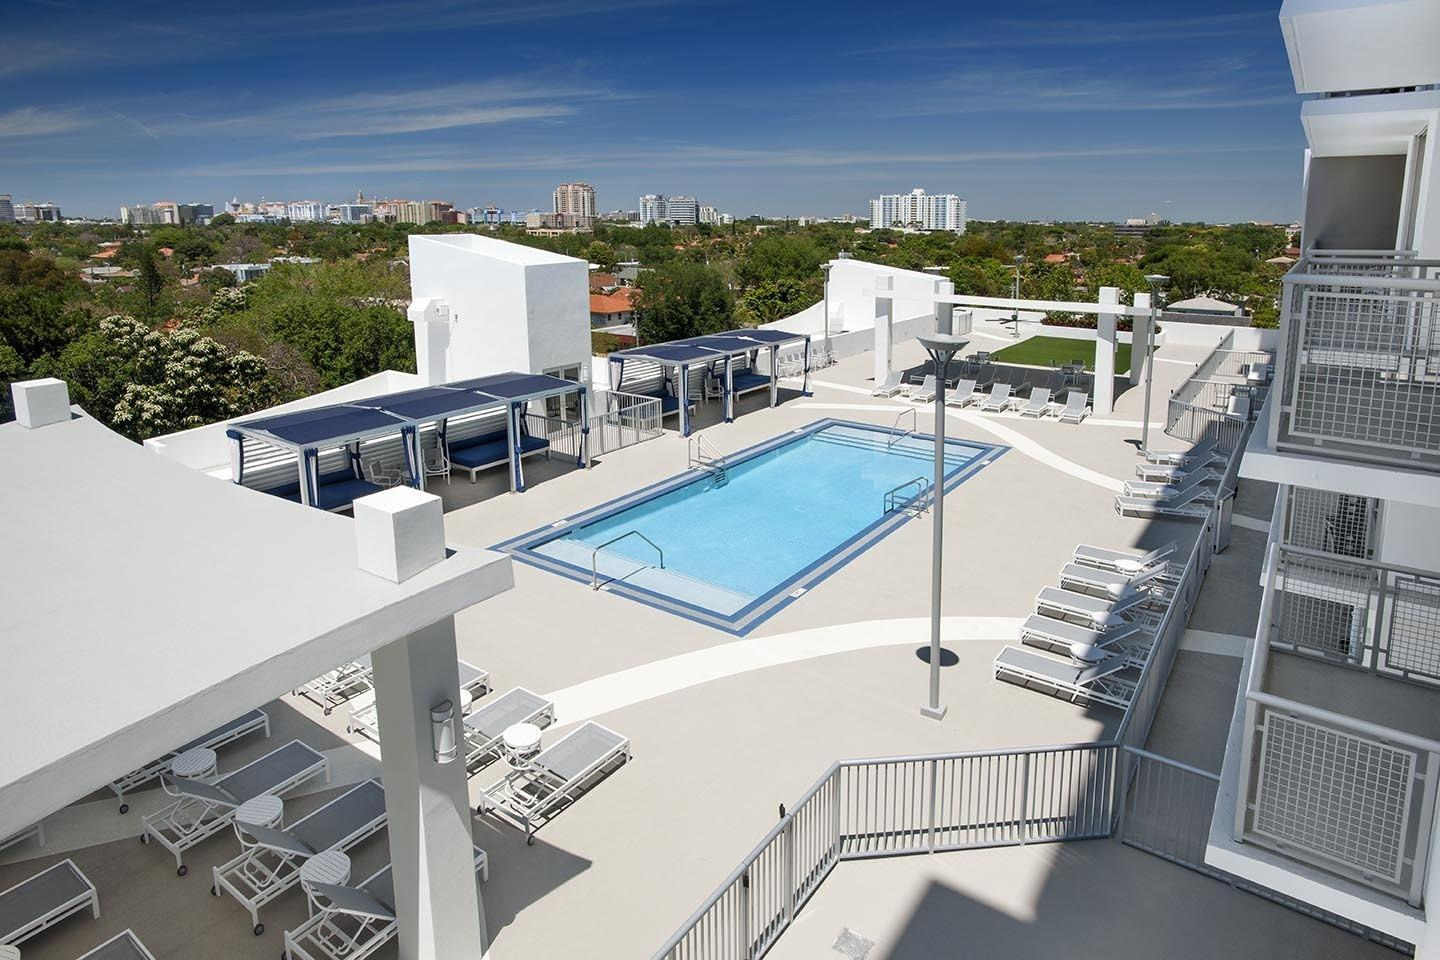 Average Rent For One Bedroom Apartment In Miami 28 Images Average Rent For 1 Bedroom